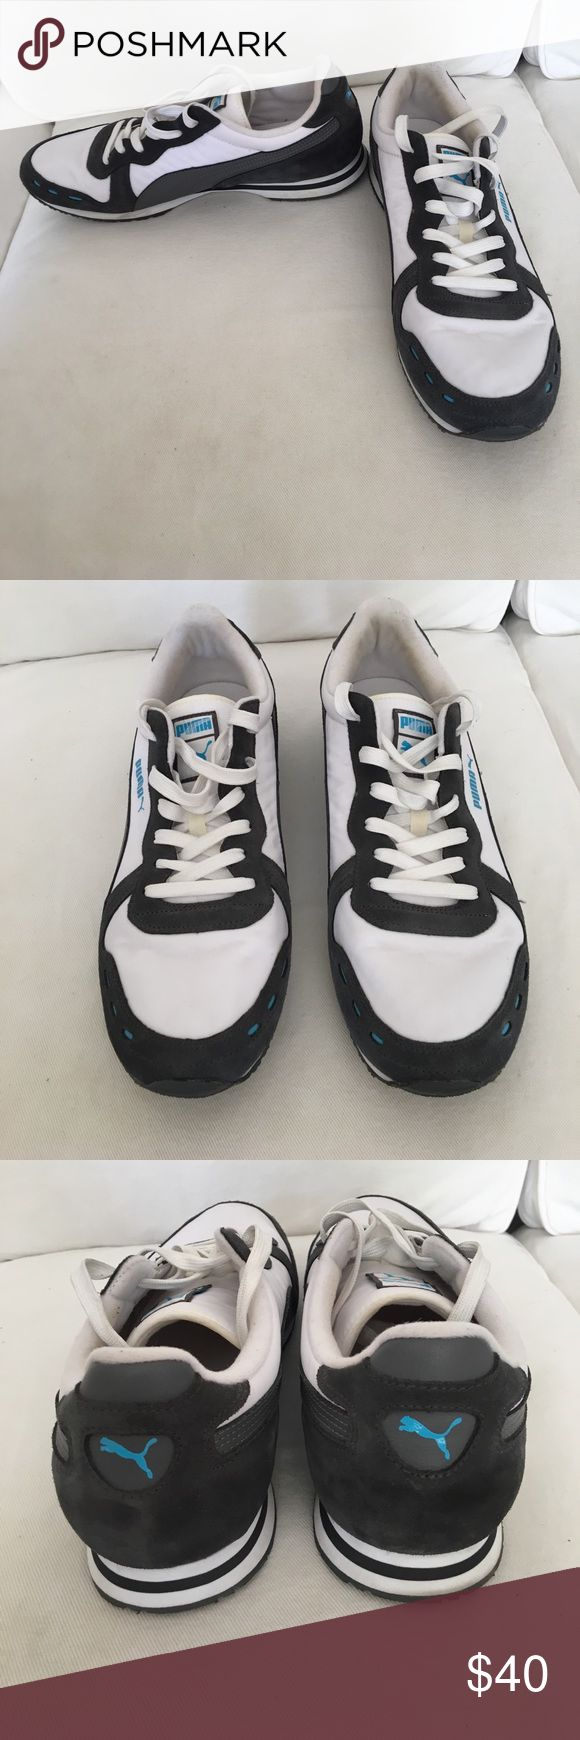 Men's puma sneakers Men's puma sneakers size 13. White with grey and blue. Only worn a few times and in good condition! Puma Shoes Sneakers